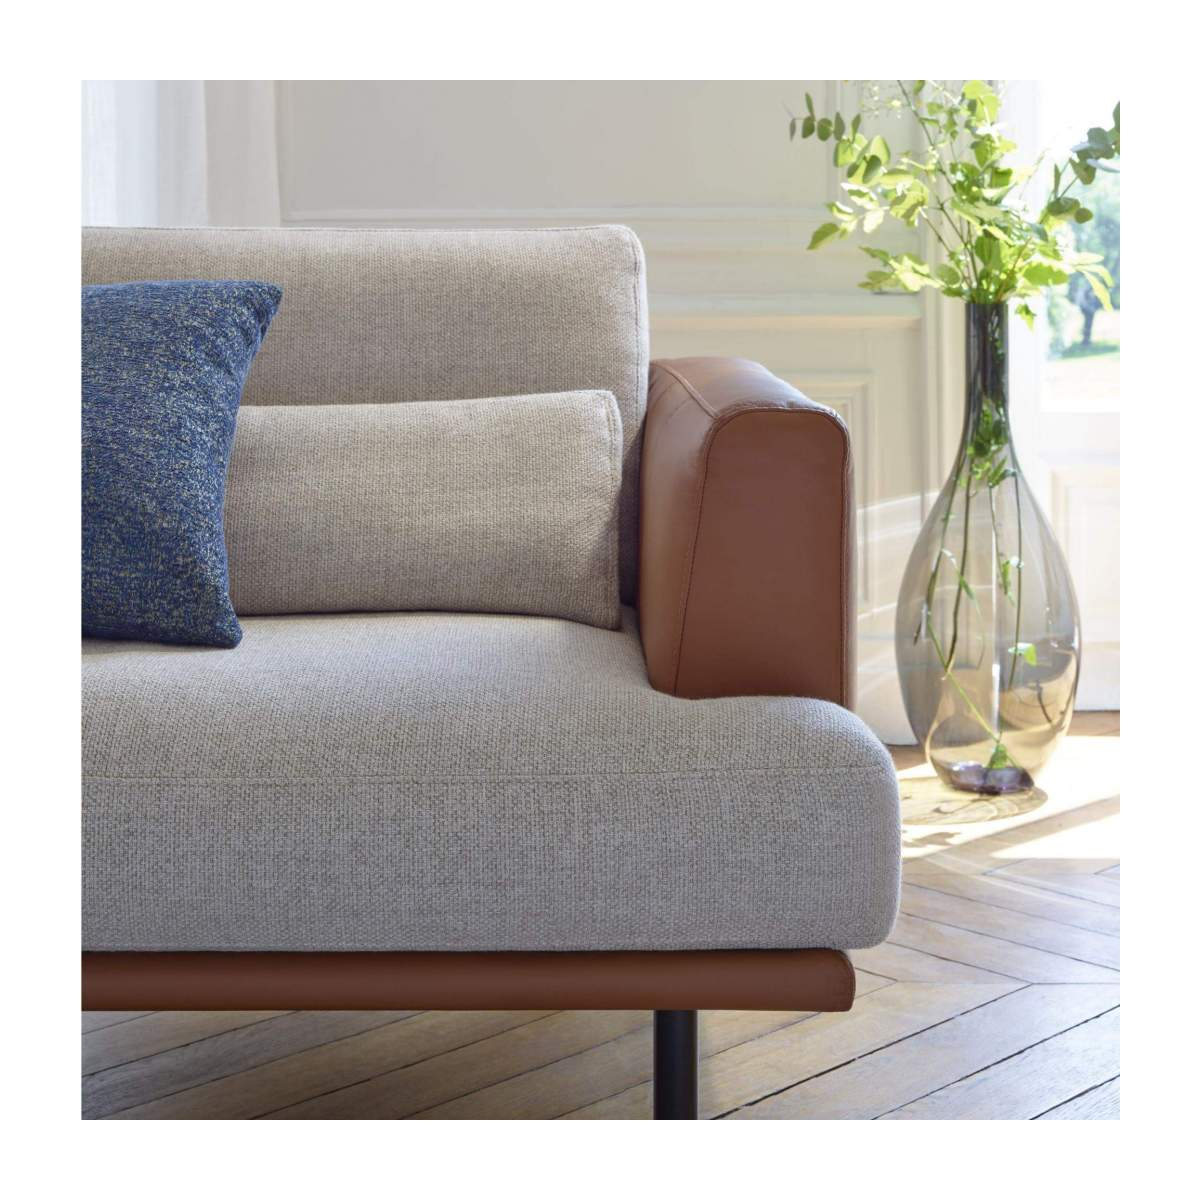 3 seater sofa in Fasoli fabric, grey sky with base and armrests in brown leather n°6